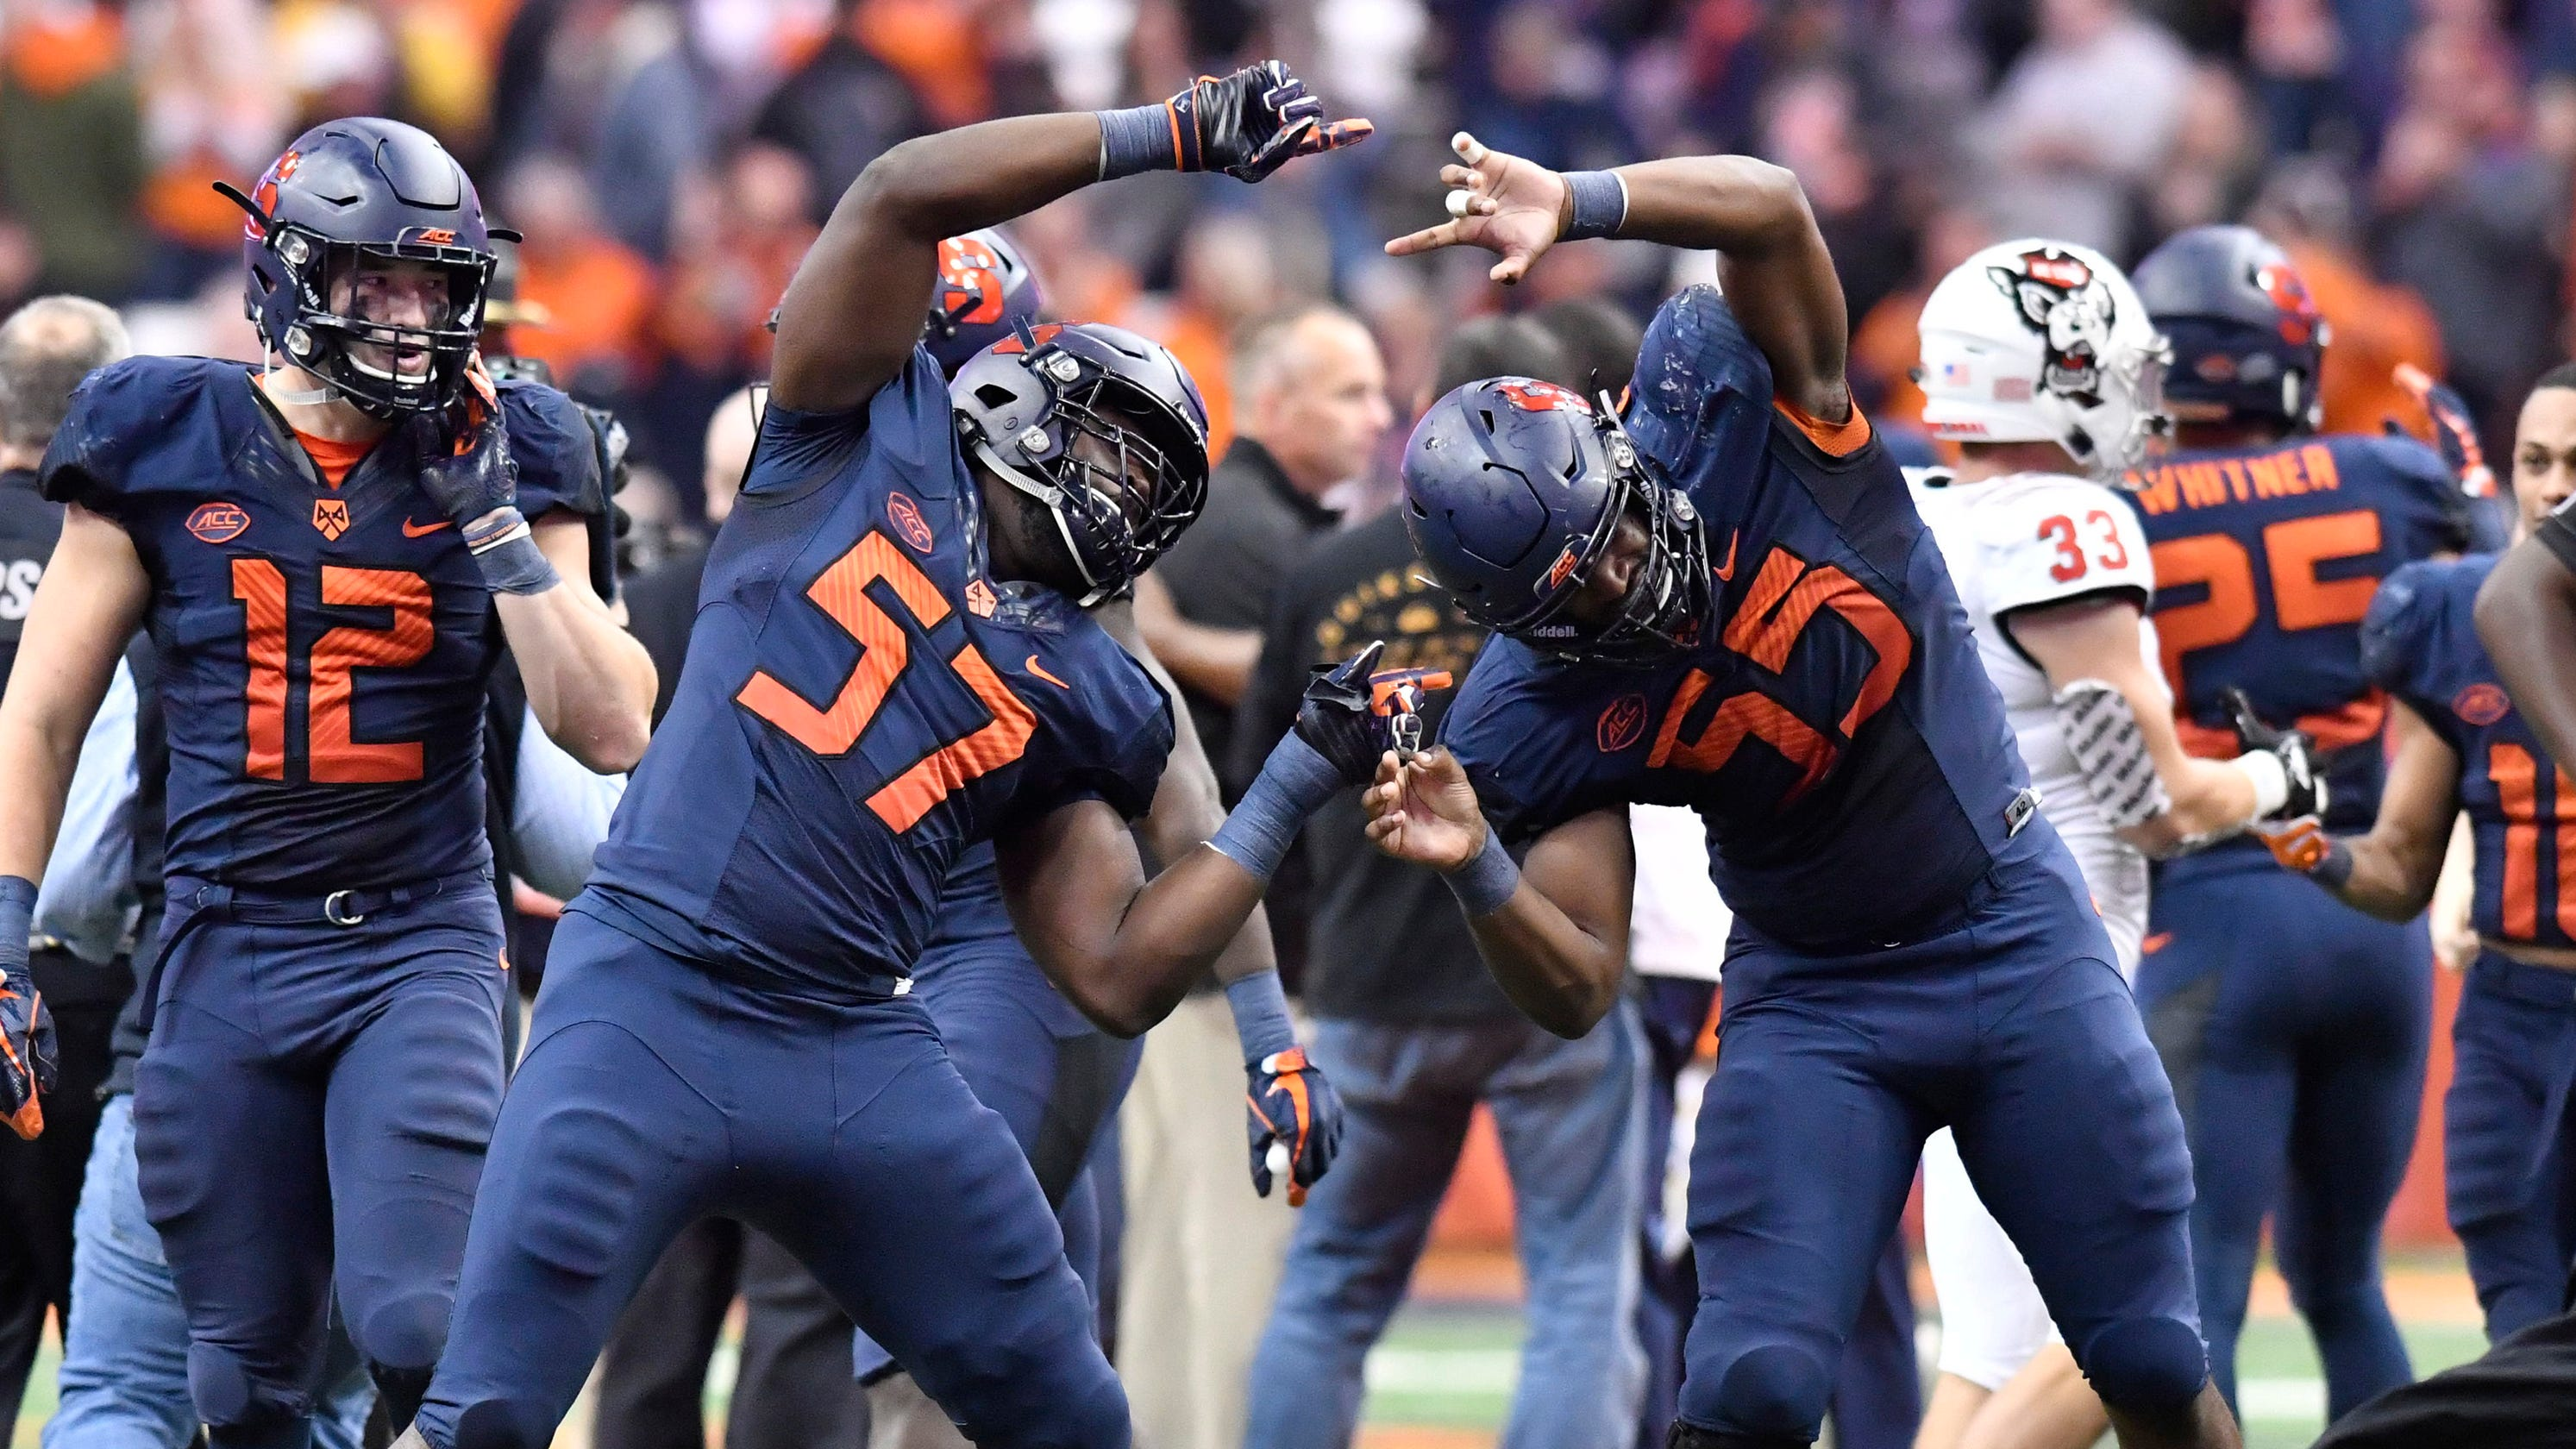 How to watch Syracuse-Wake Forest football: What is the game